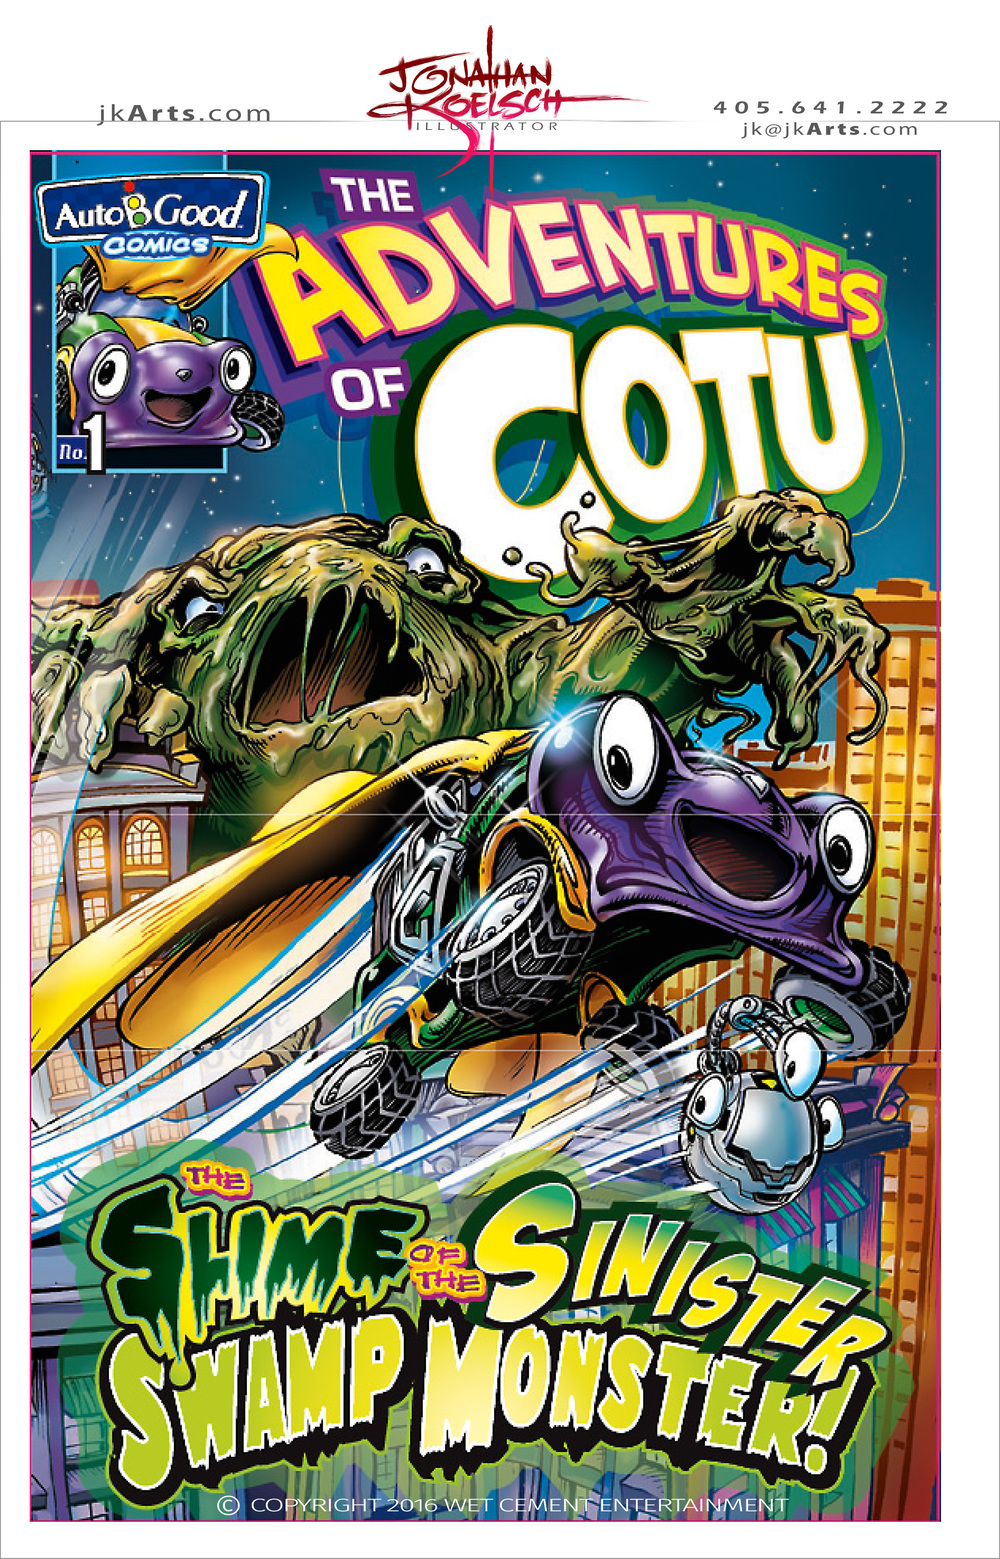 COTU AutoBGood Cover.jpg